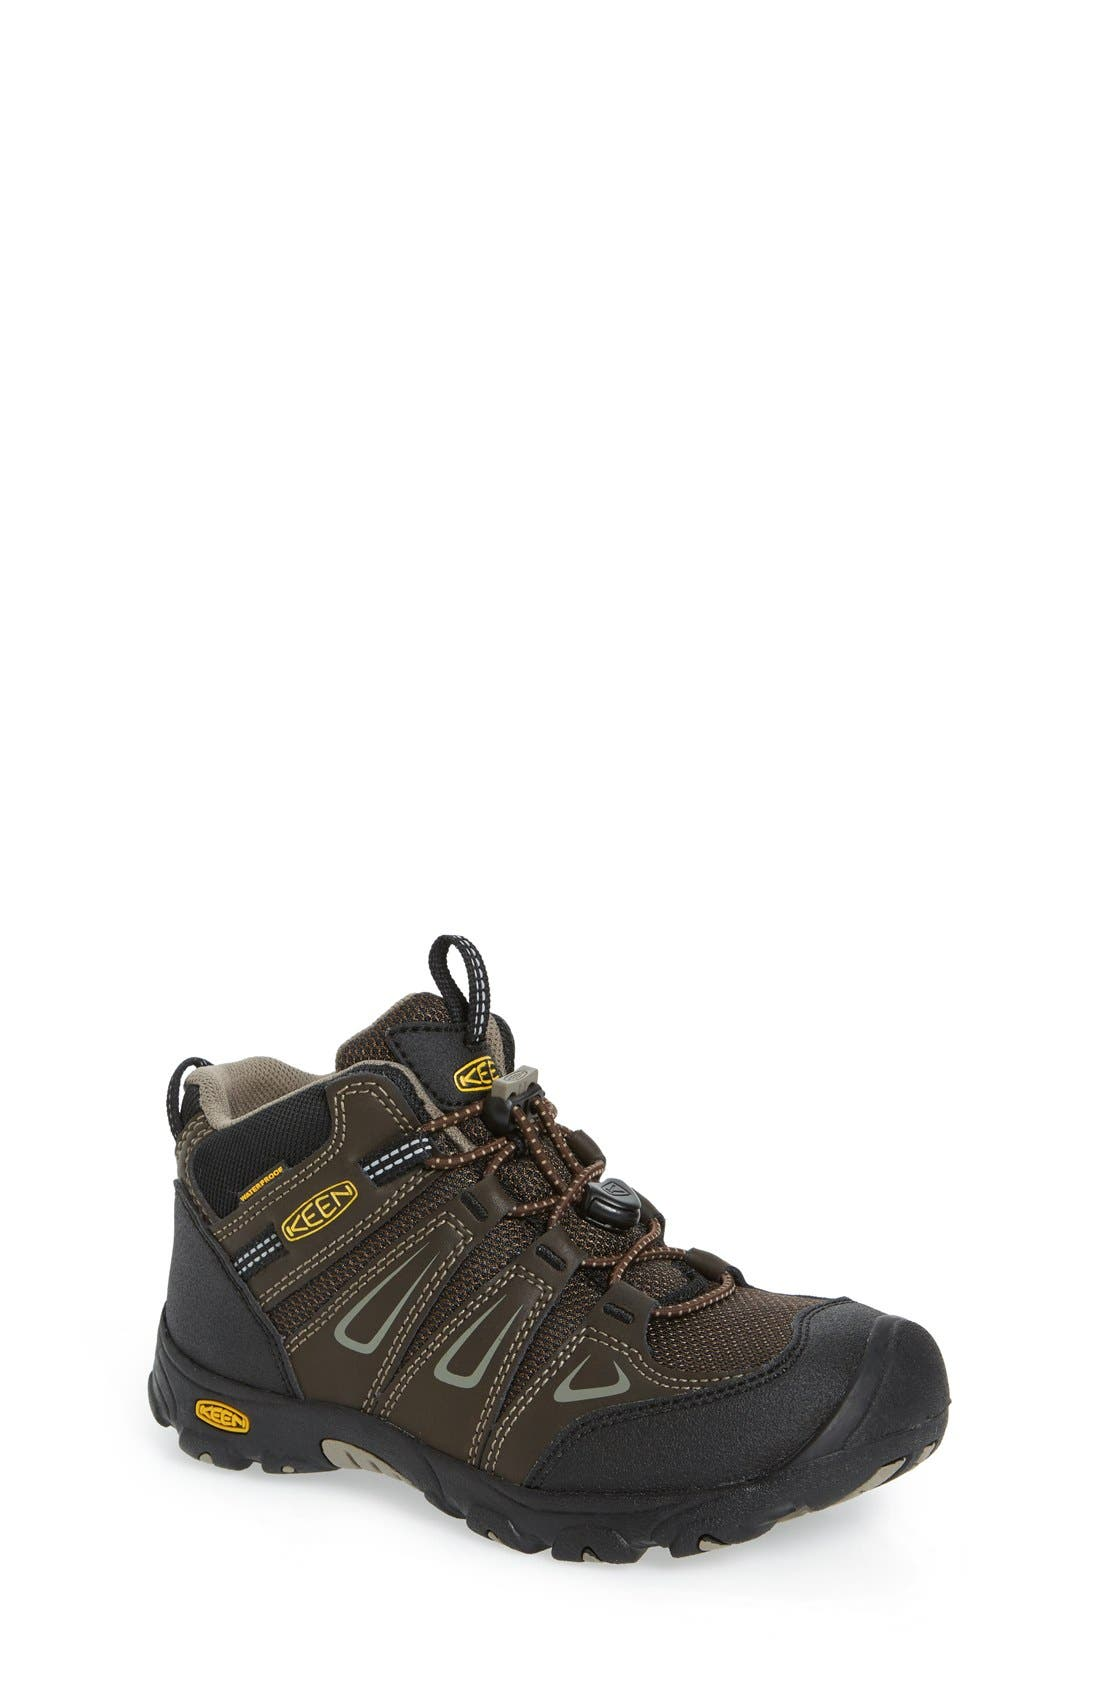 Keen 'Oakridge' Waterproof Hiking Boot (Toddler, Little Kid & Big Kid)